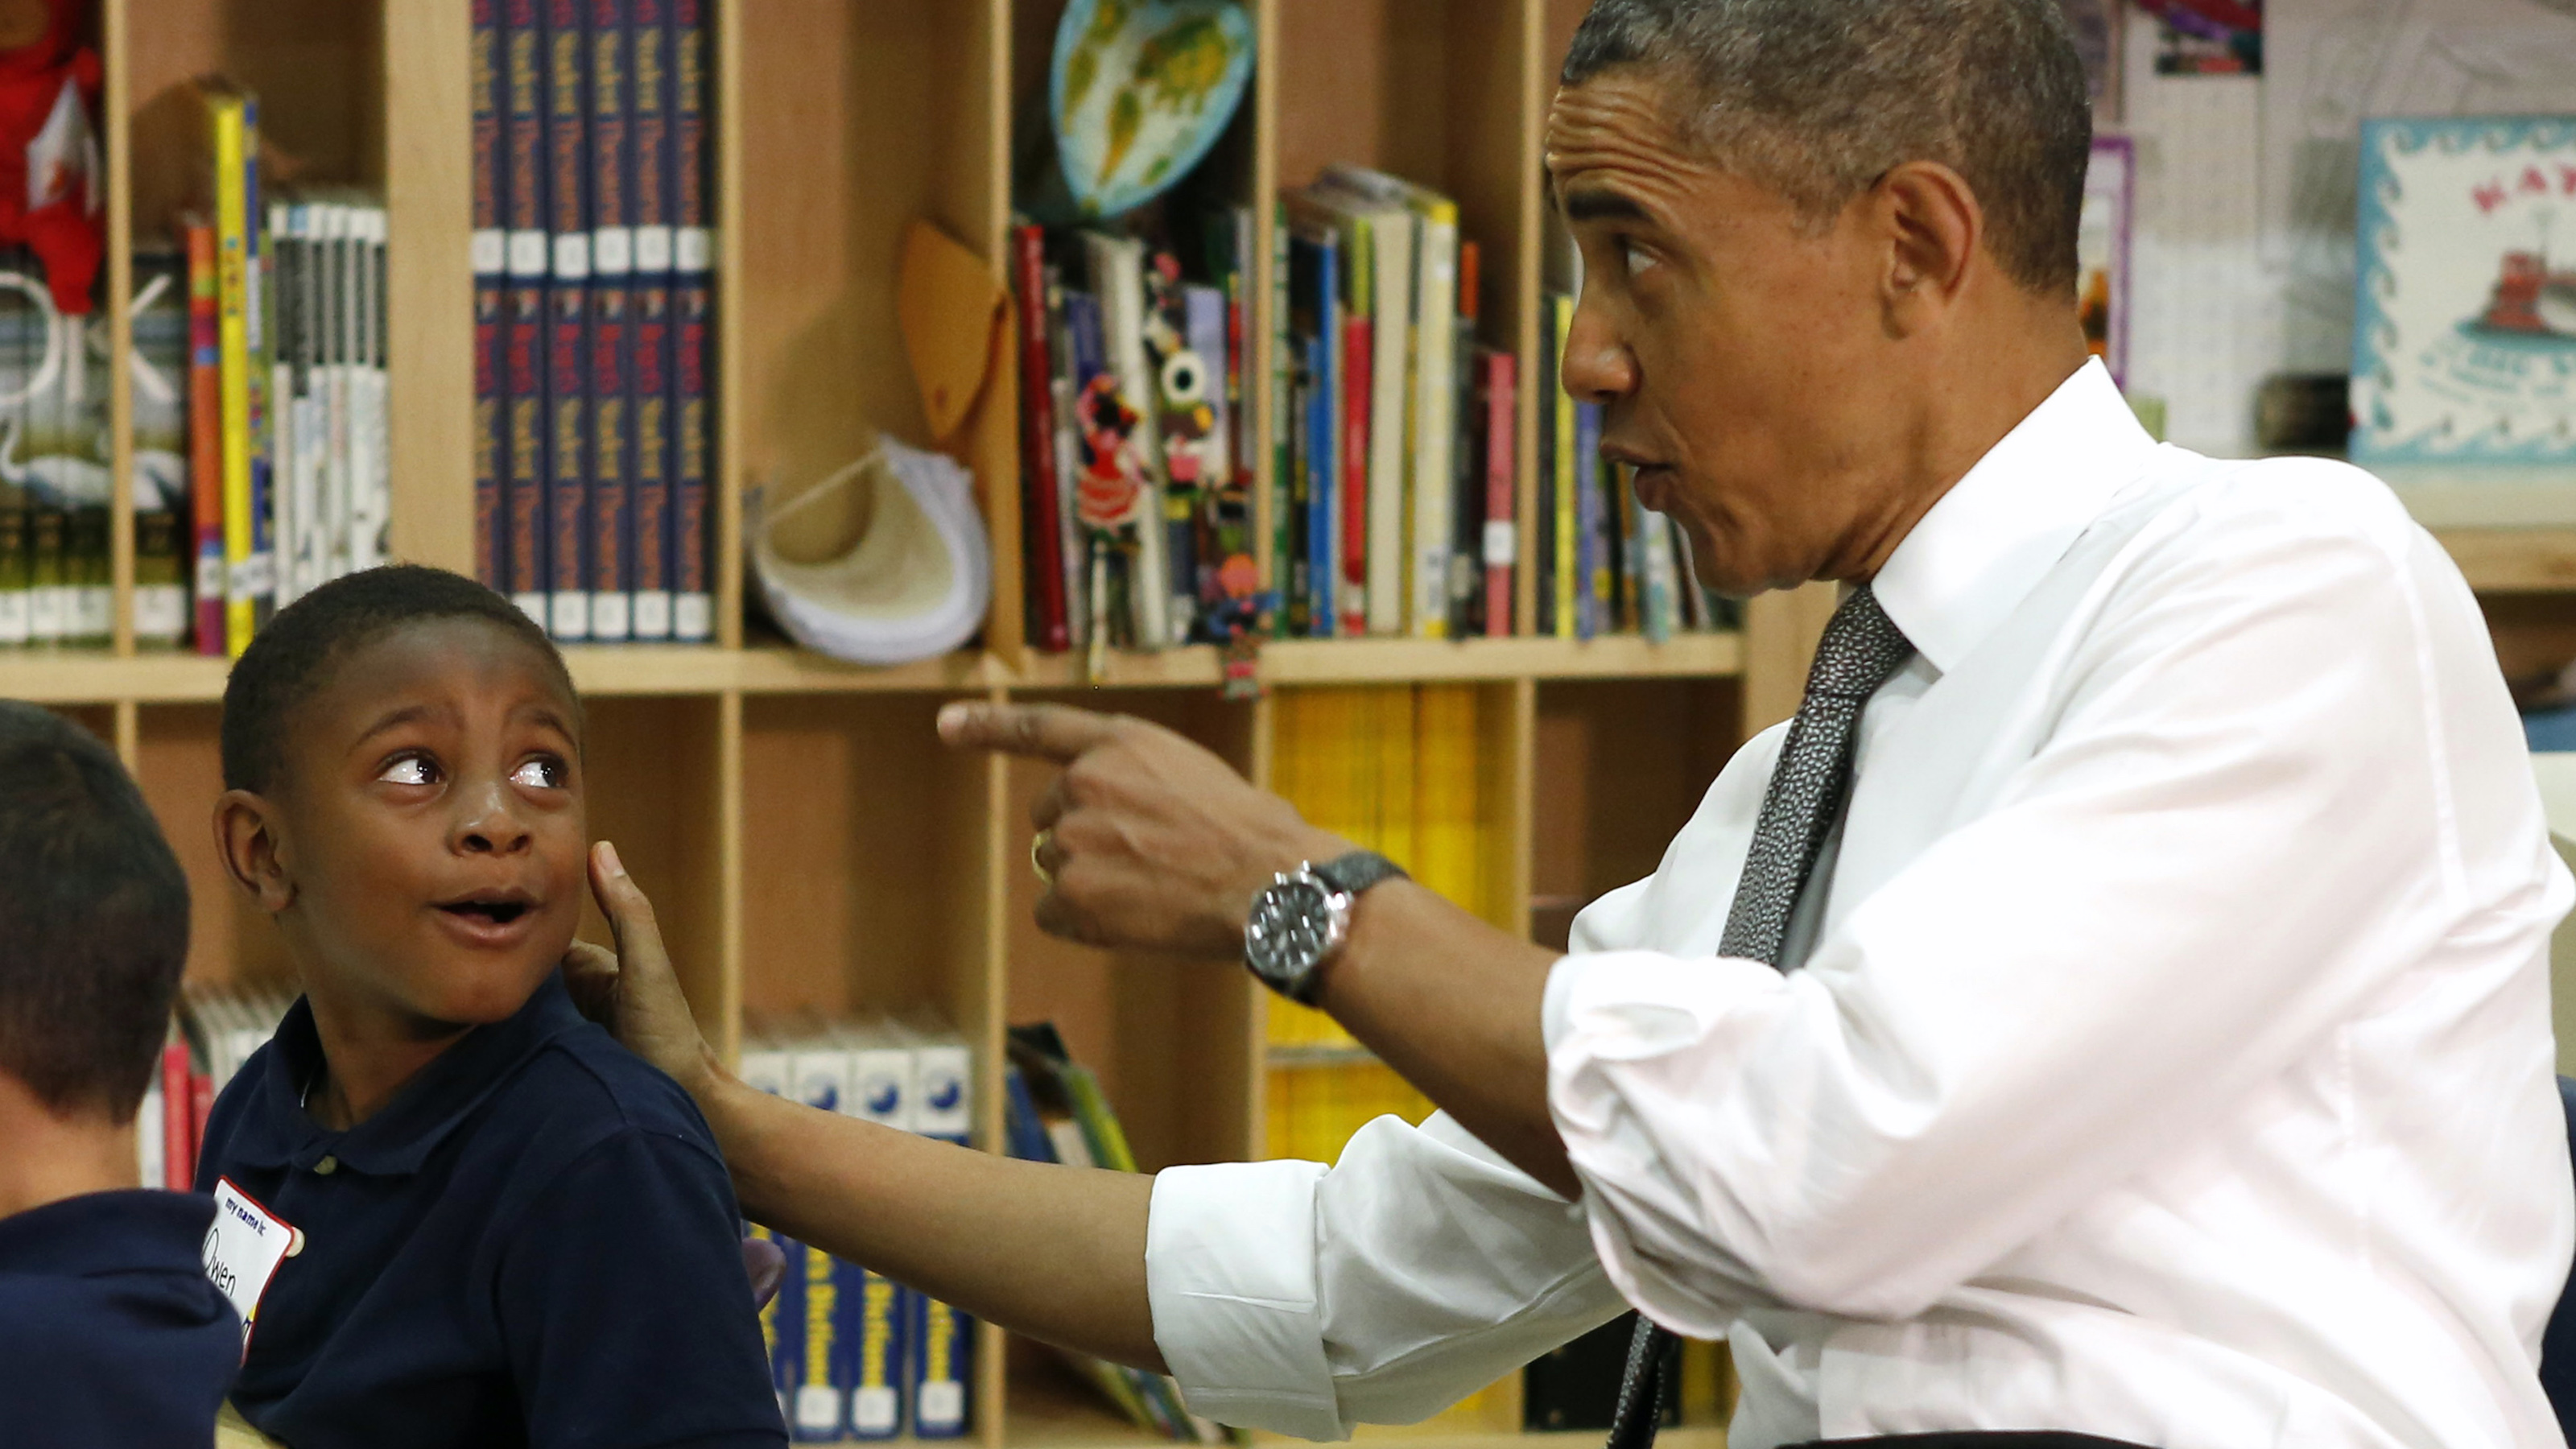 U.S. President Barack Obama talks with a pre-kindergarten student at Moravia Park Elementary School during his second 'Middle Class Jobs and Opportunity Tour' in Baltimore, Maryland May 17, 2013. REUTERS/Kevin Lamarque   (UNITED STATES - Tags: POLITICS EDUCATION TPX IMAGES OF THE DAY) - RTXZQO8